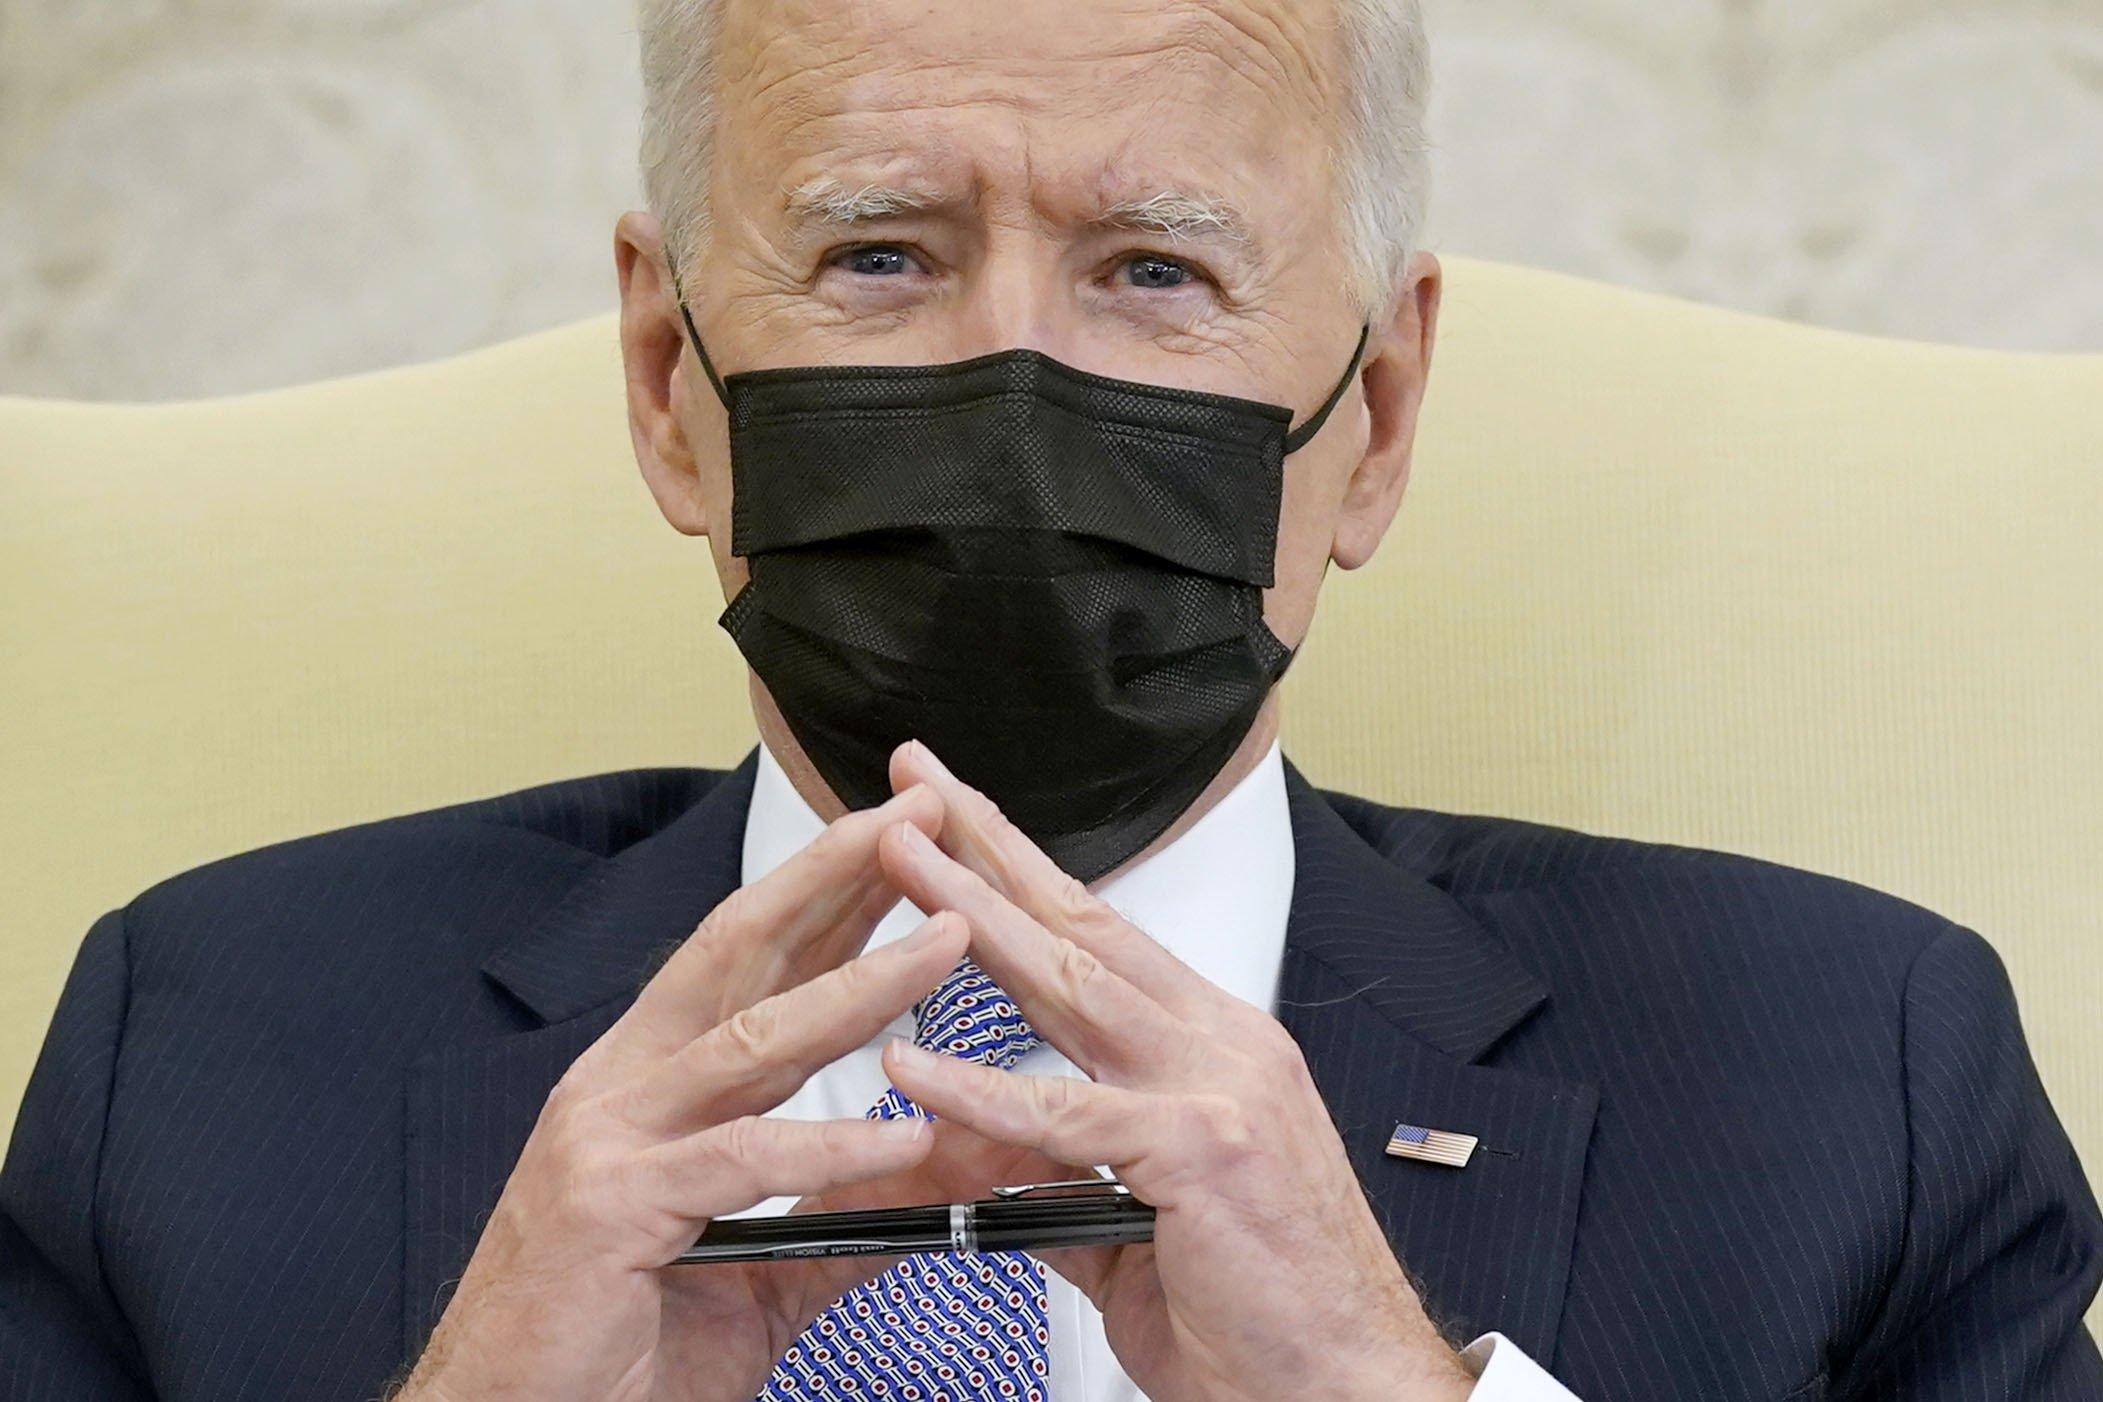 Biden aims for bipartisanship but applies stealthy pressure